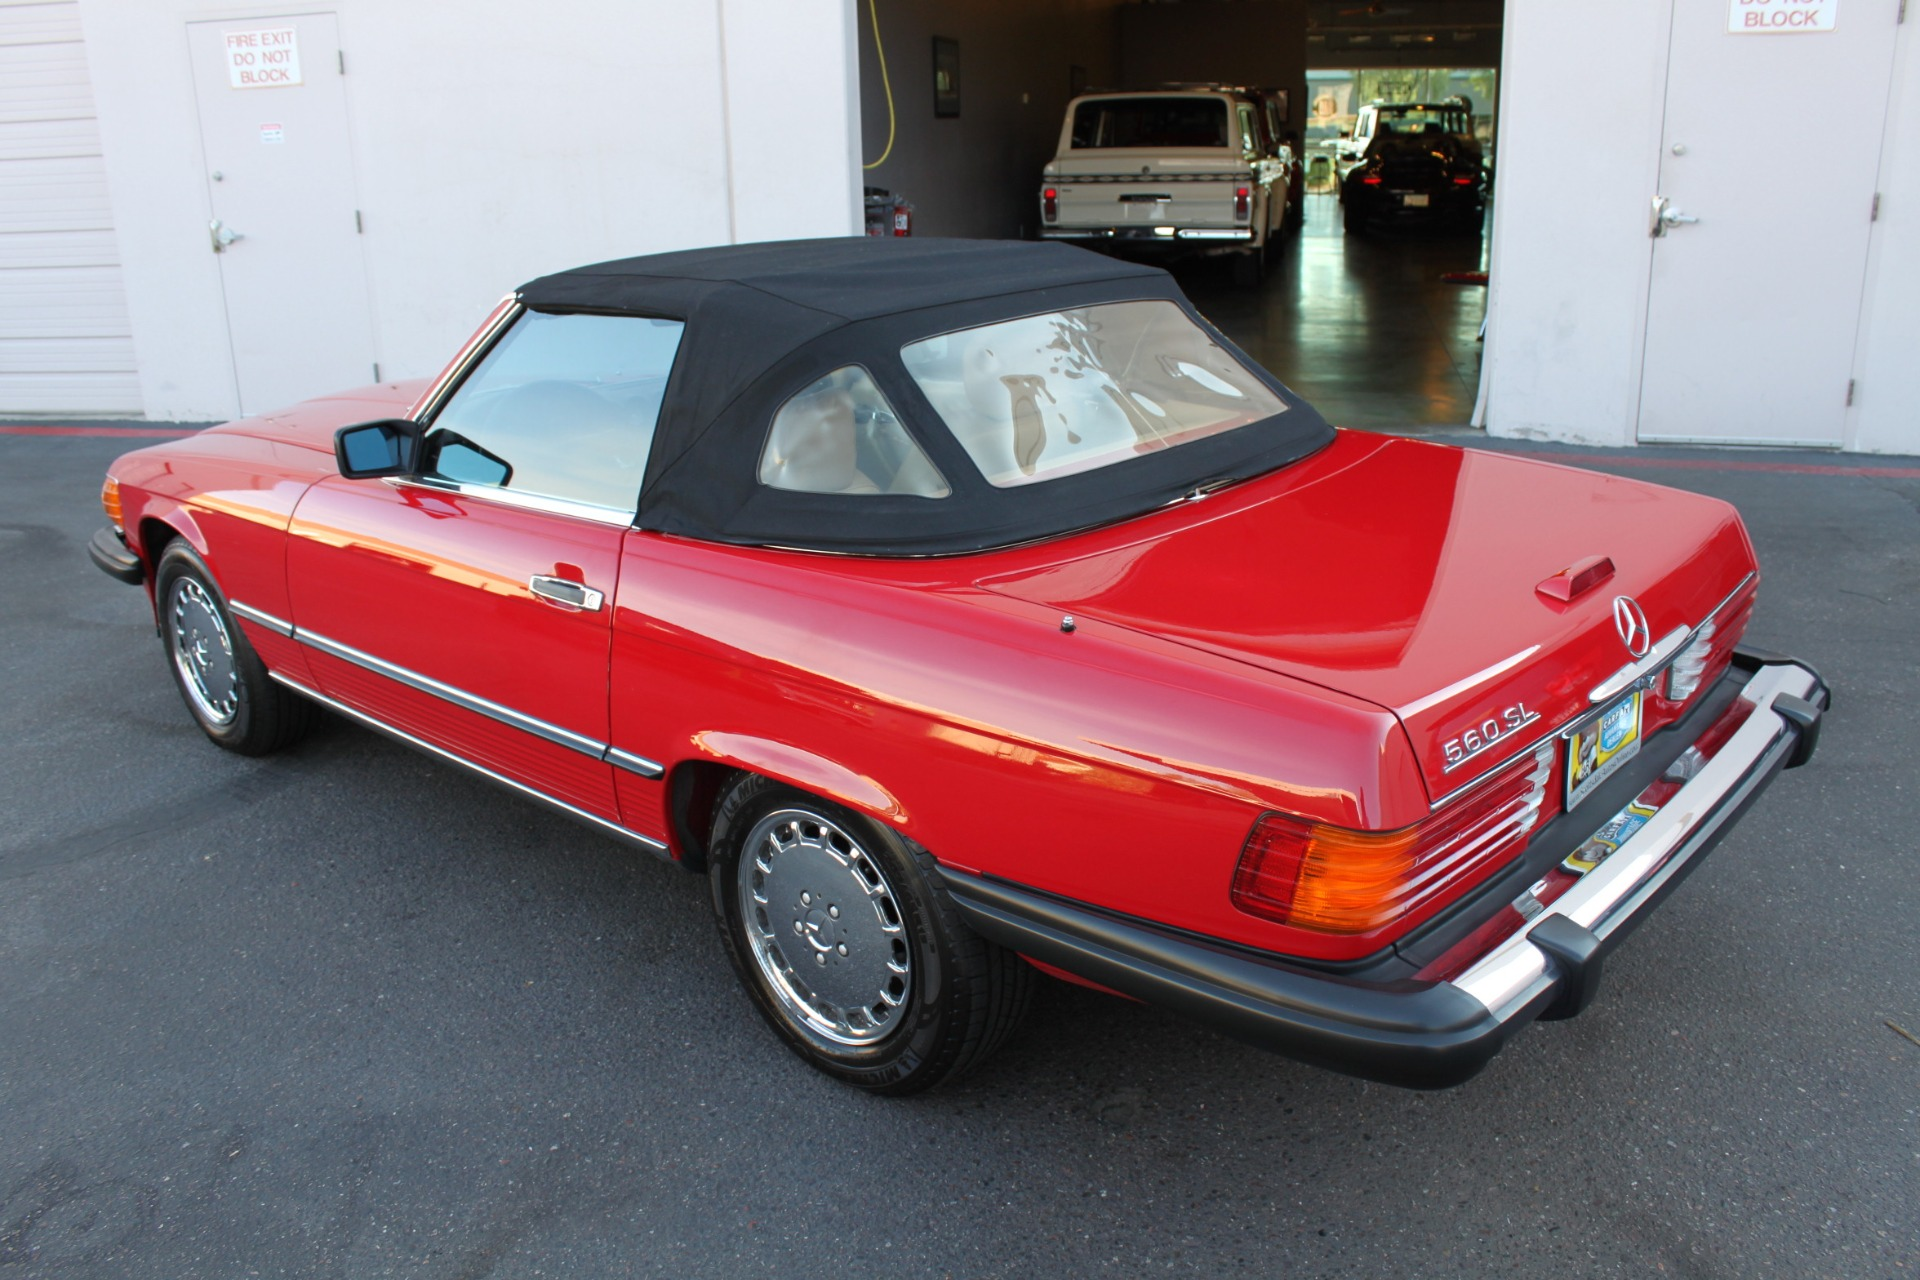 Used-1989-Mercedes-Benz-560-Series-560SL-Ferrari